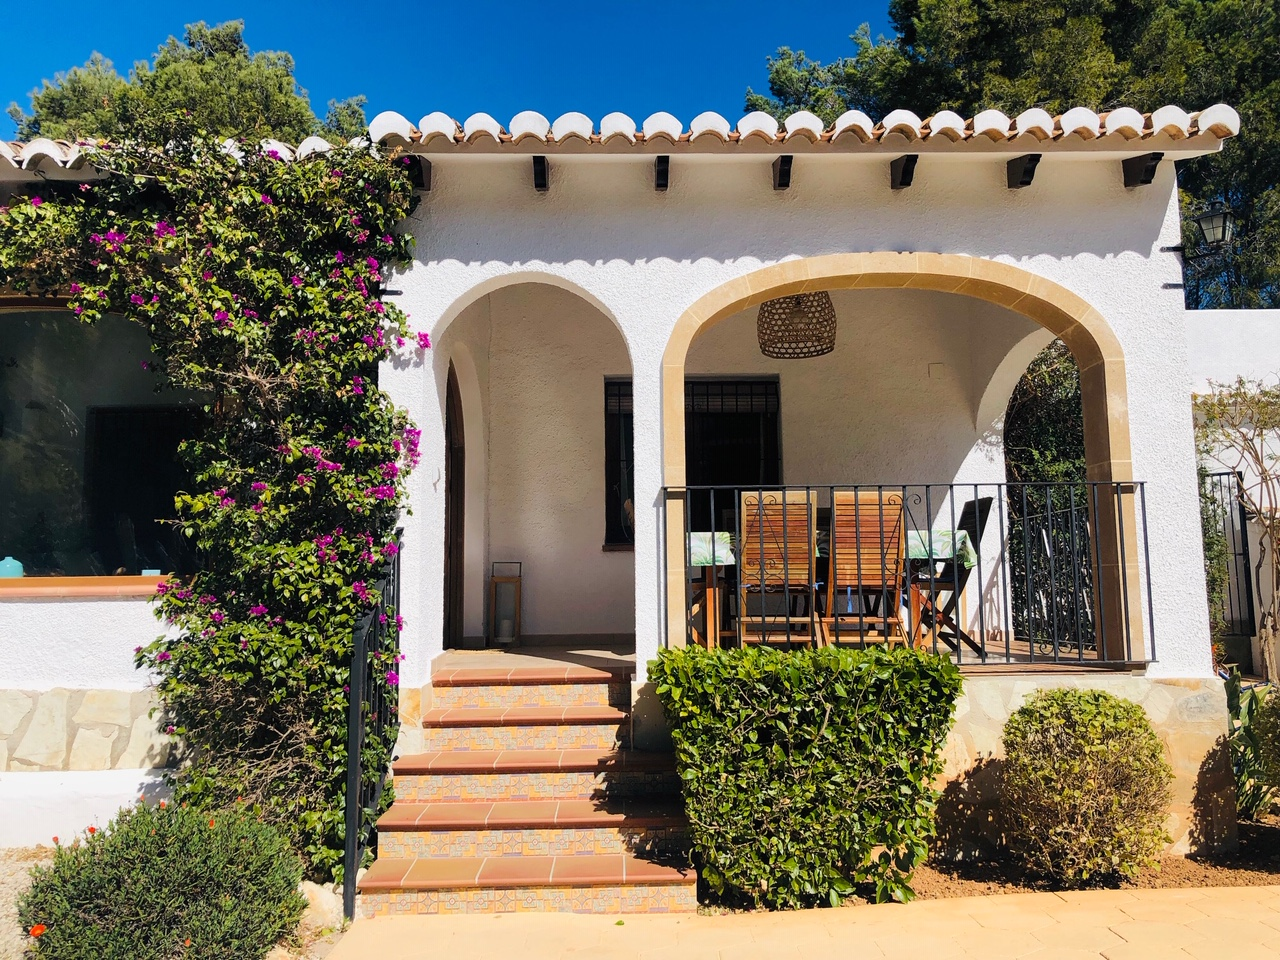 Entrepinos, Wonderful and comfortable holiday house in Javea, on the Costa Blanca, Spain for 6 persons.....